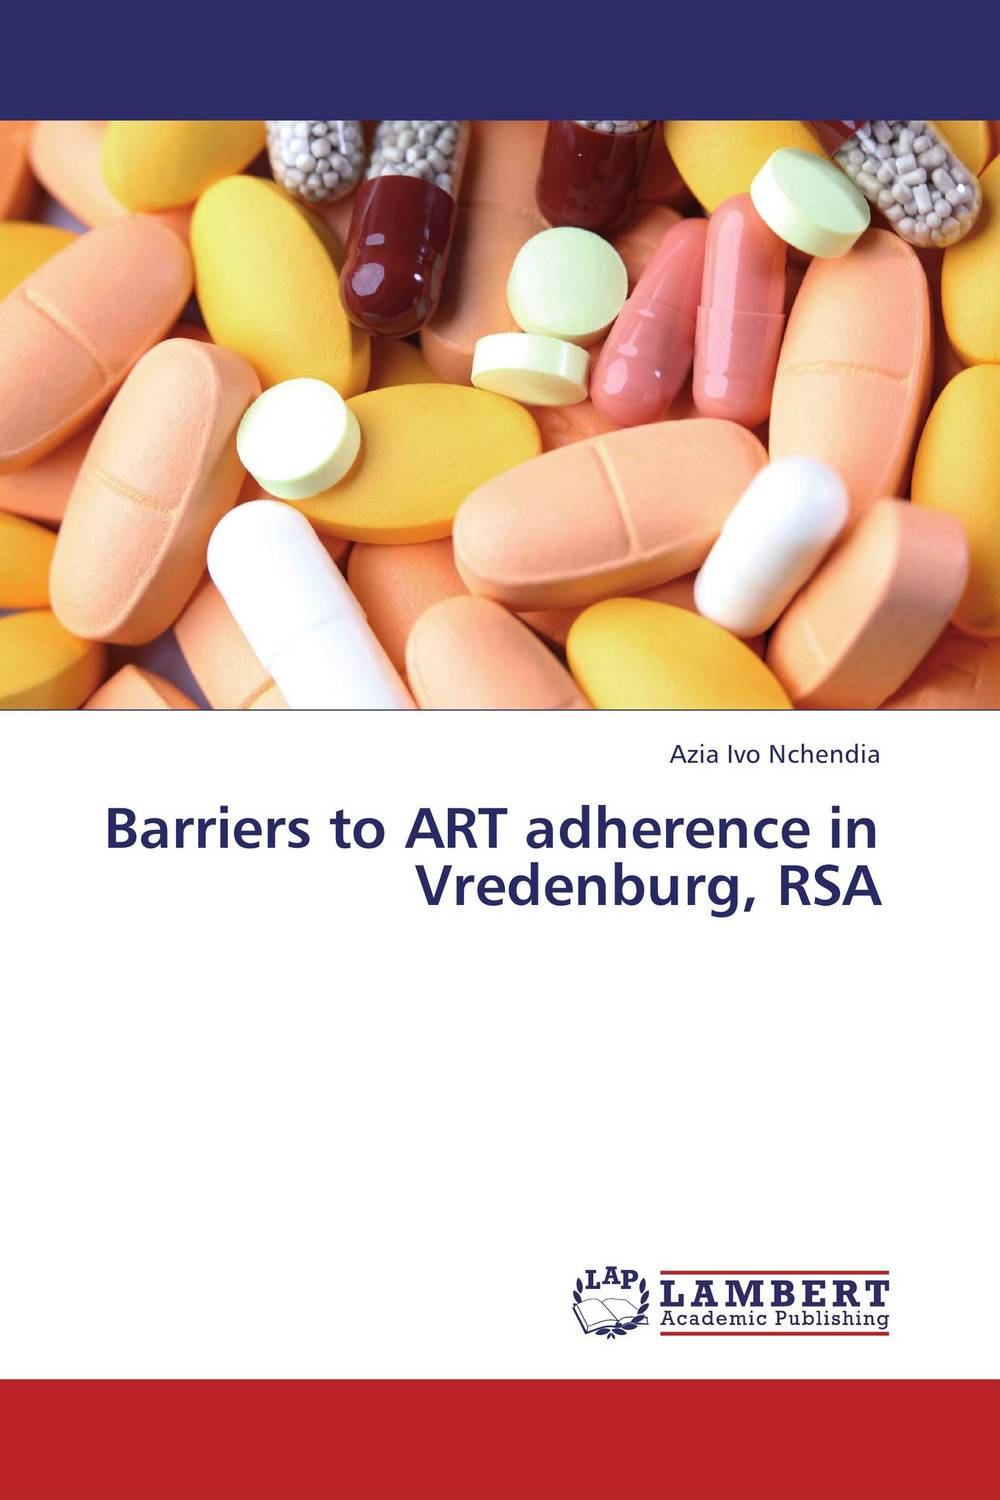 Barriers to ART adherence in Vredenburg, RSA seduced by death – doctors patients